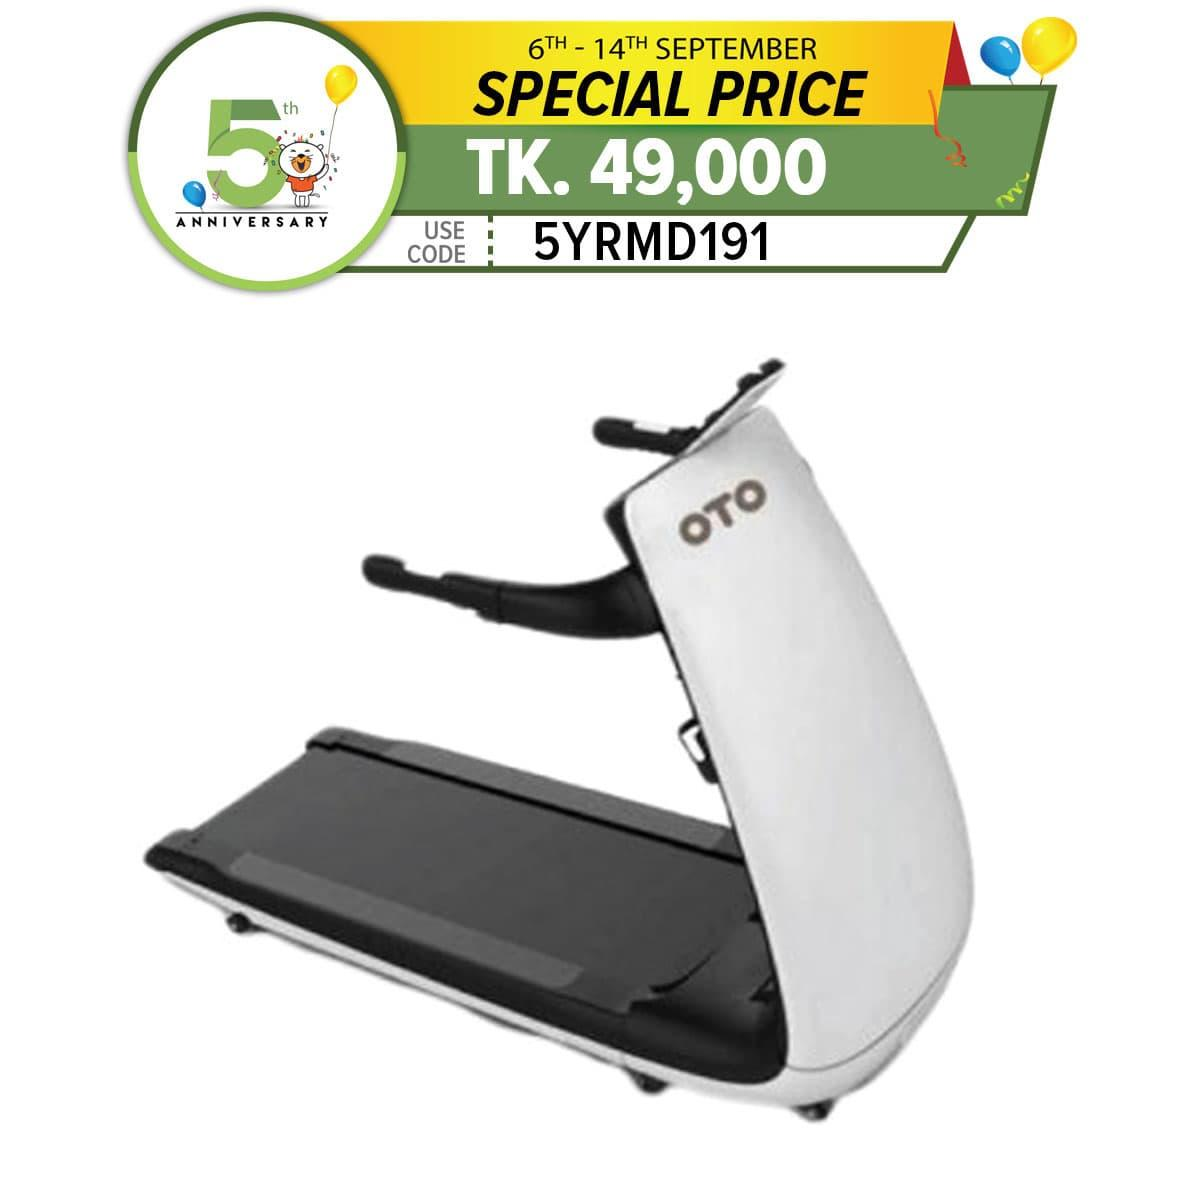 AL-1000 - Antelope Foldable Treadmill With Cushion System - 0 88 CHP -  White and Black